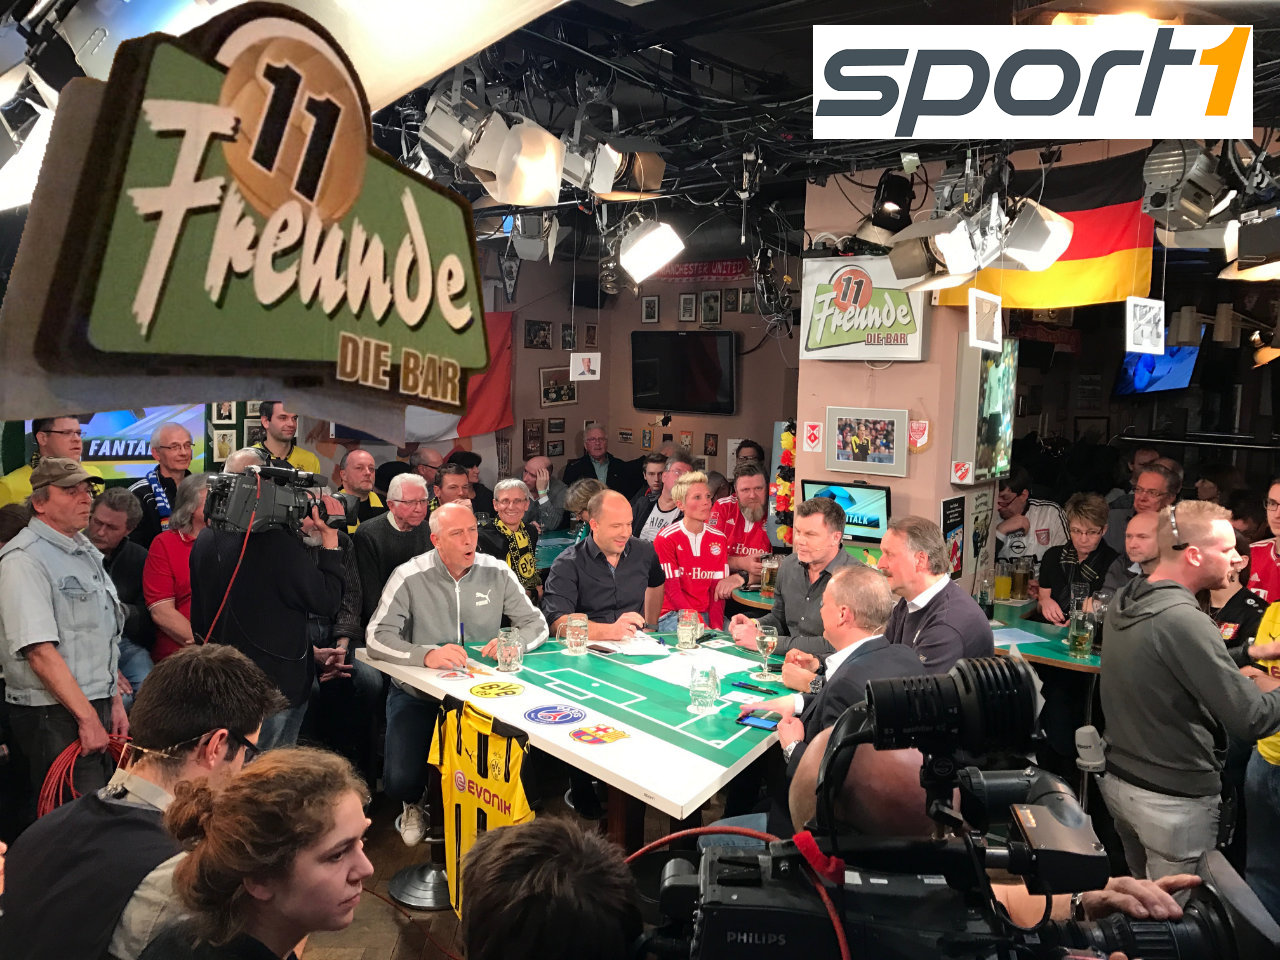 Der Sport1 Fantalk in der Essener 11freunde-Bar